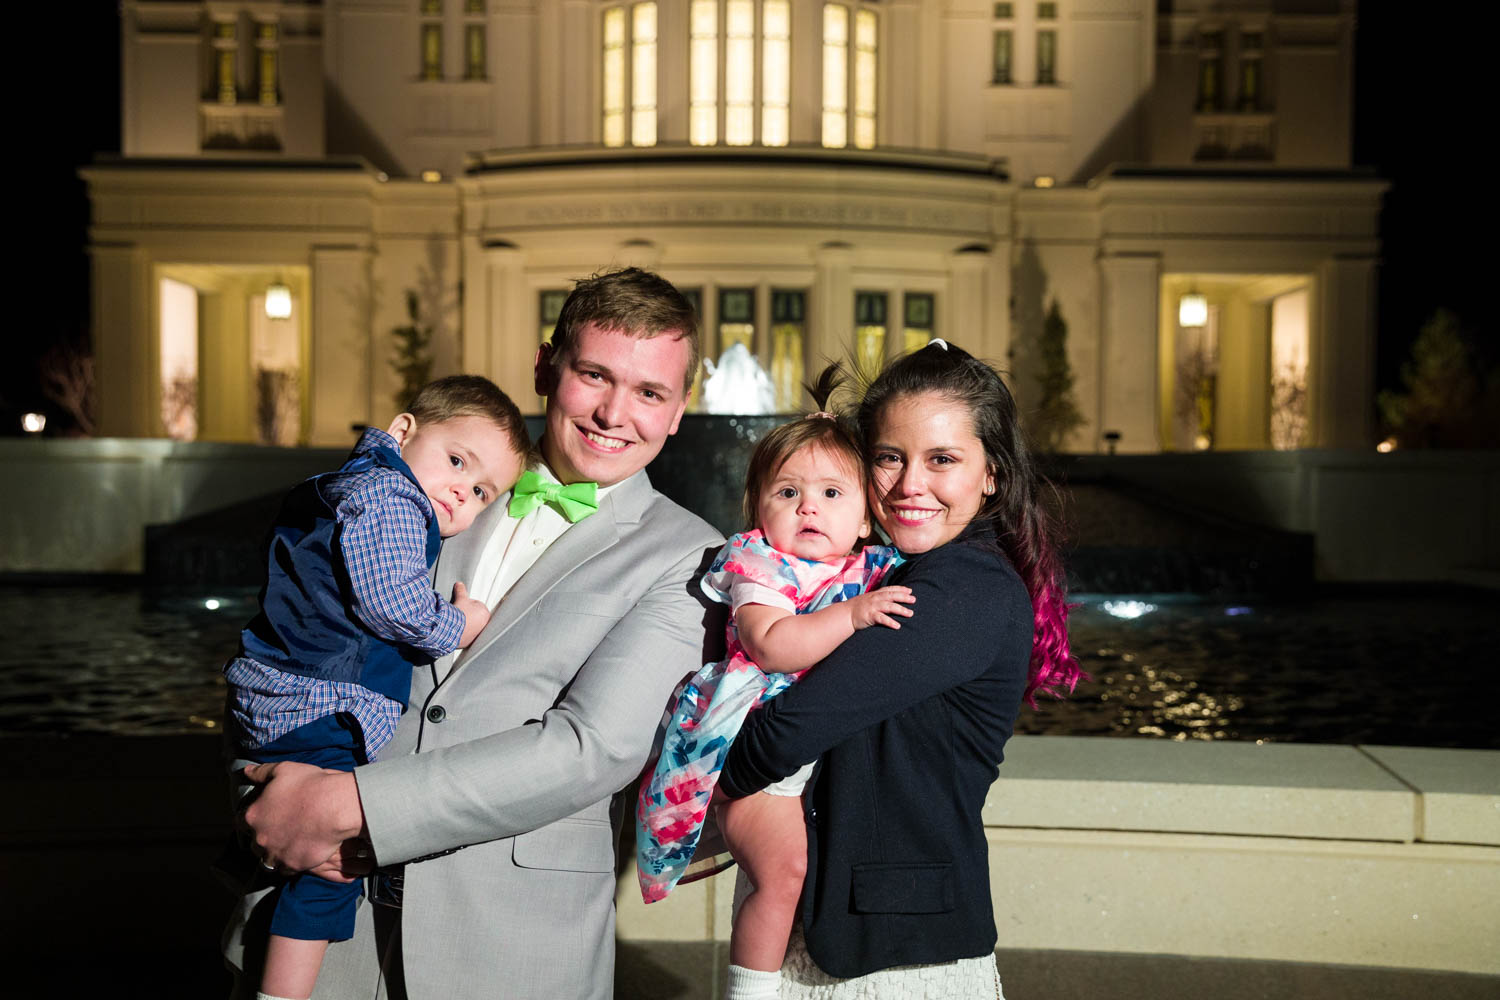 The Peck family outside the Payson Temple